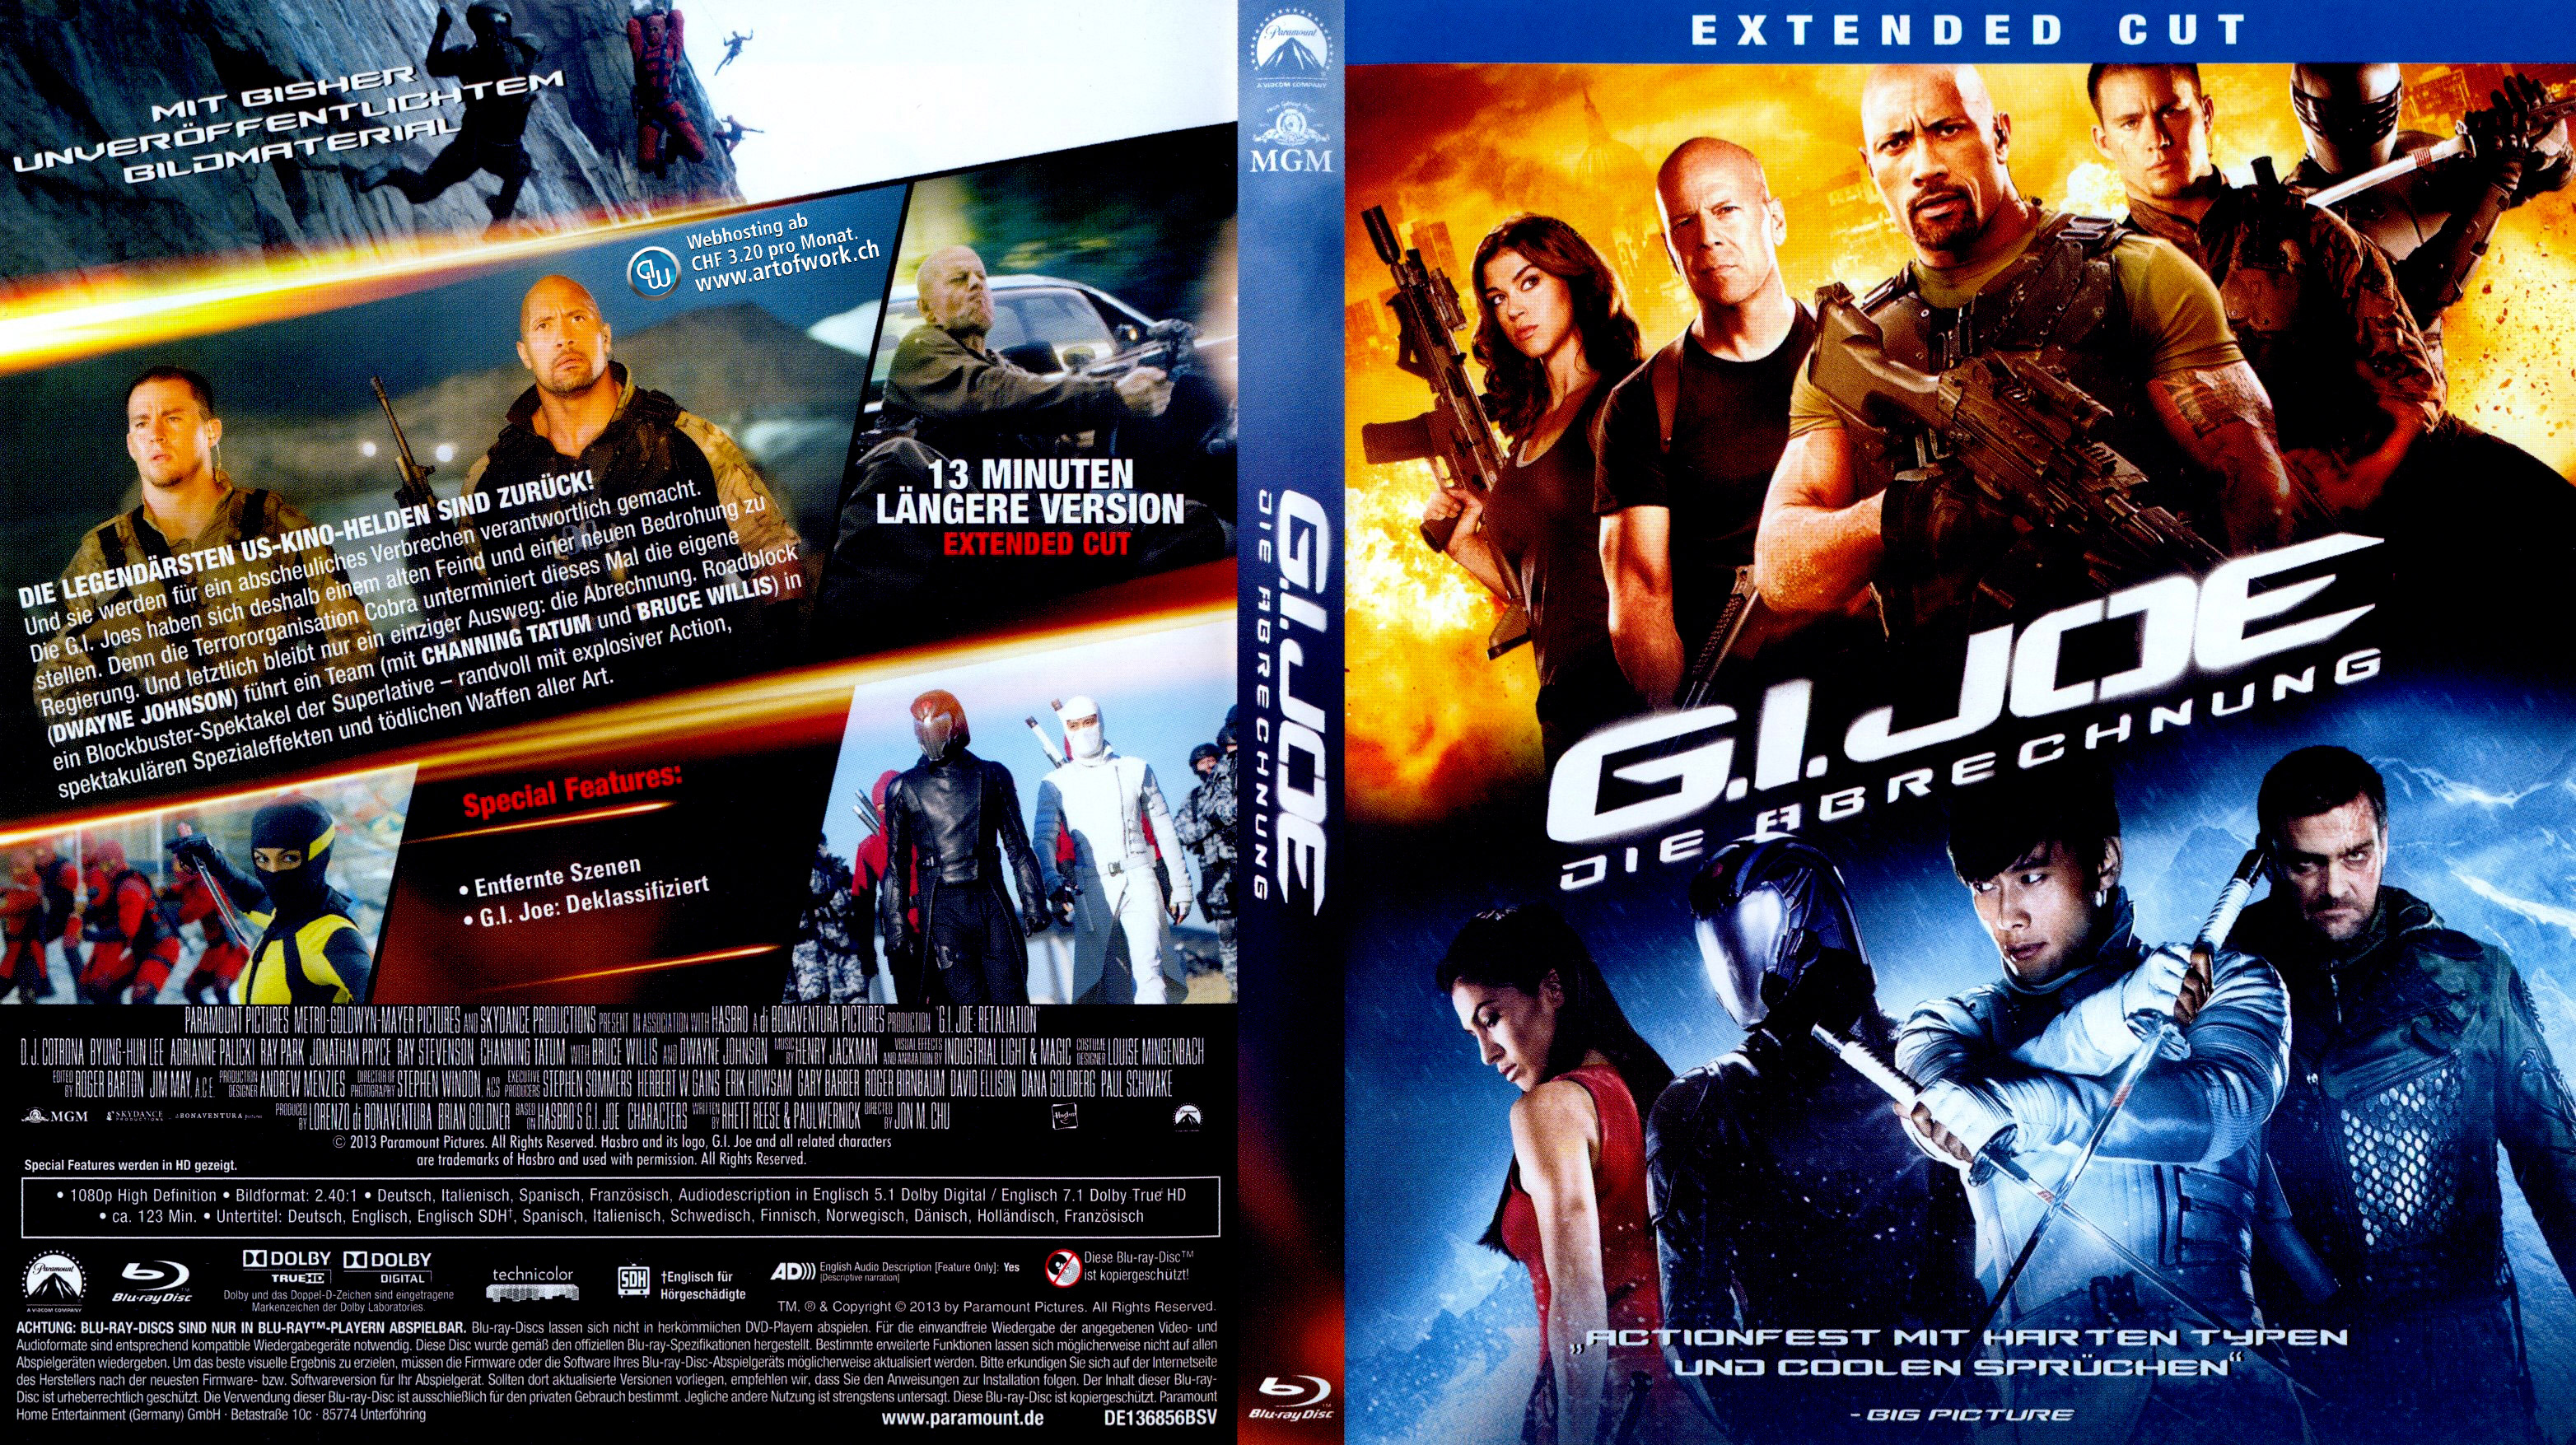 blu ray covers fair game fall 39 fargo fast furious fight club findet nemo fluch der. Black Bedroom Furniture Sets. Home Design Ideas